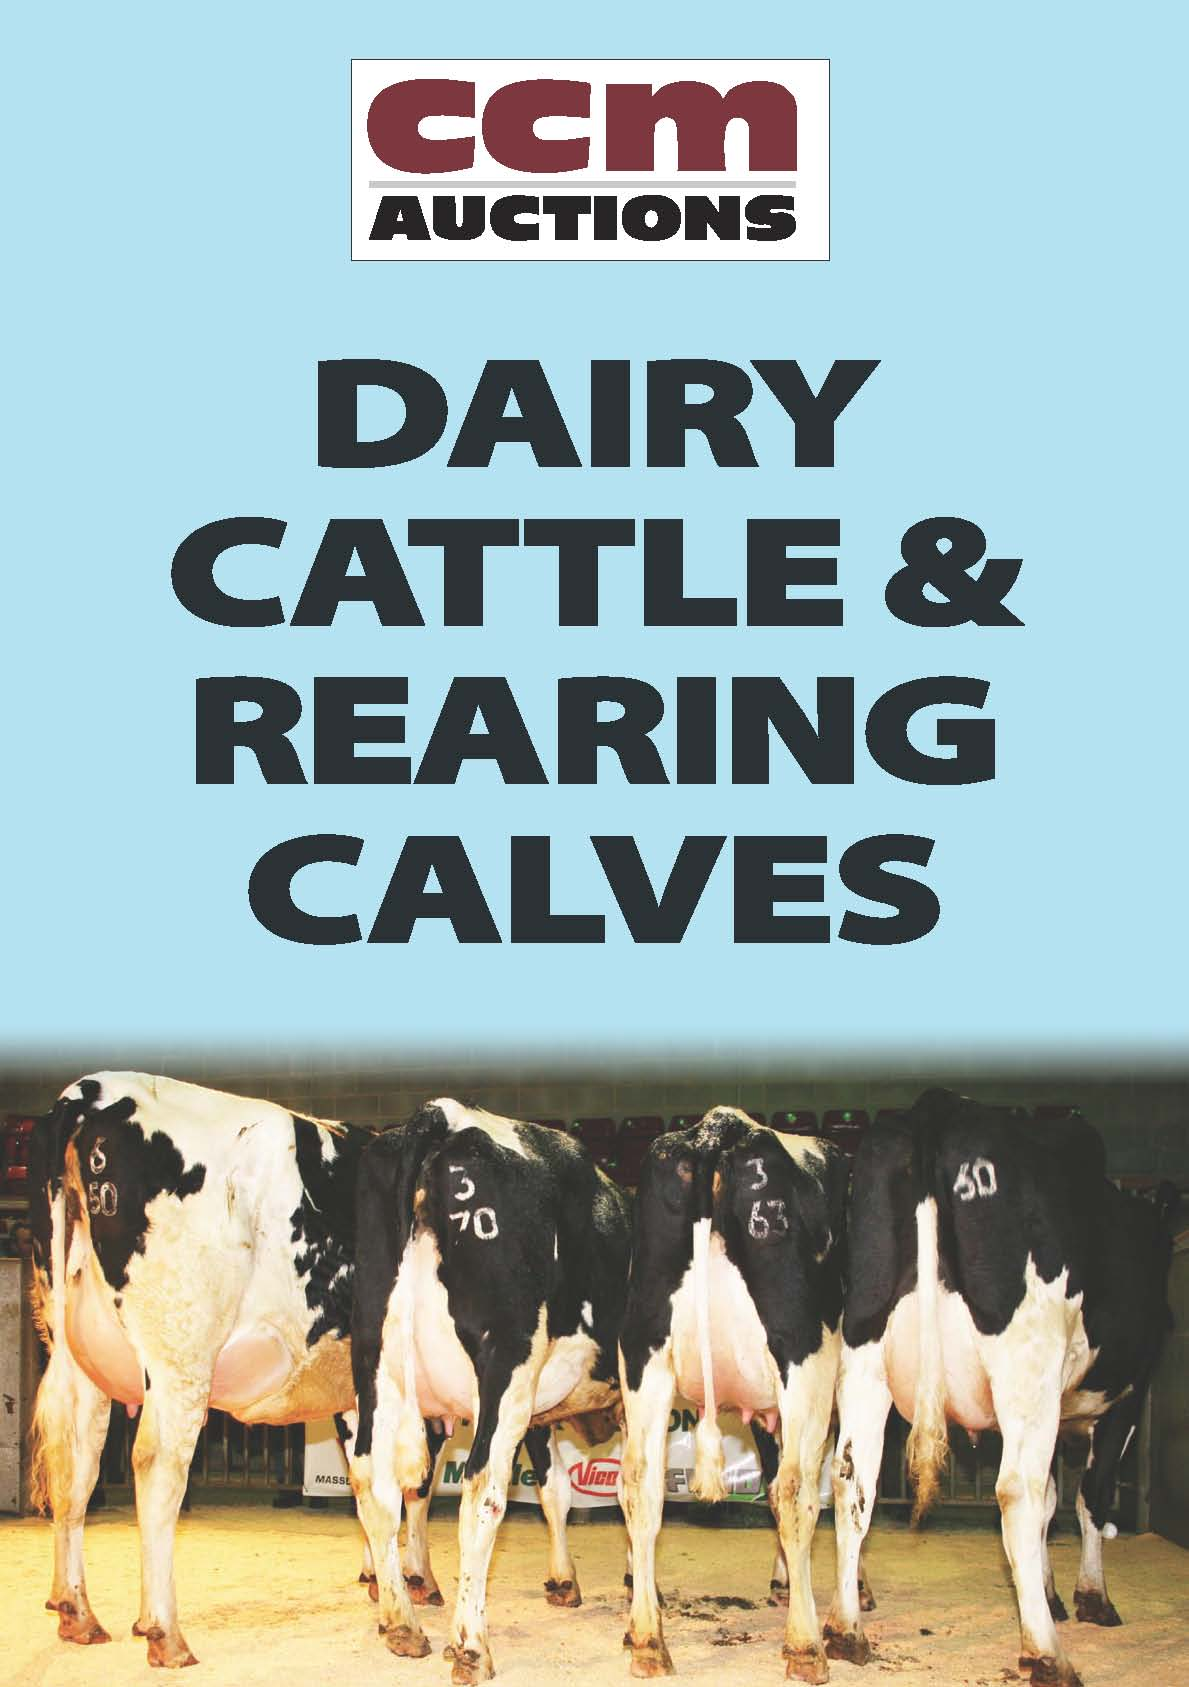 DAIRY & CALVES - MONDAY 25TH JANUARY 2016